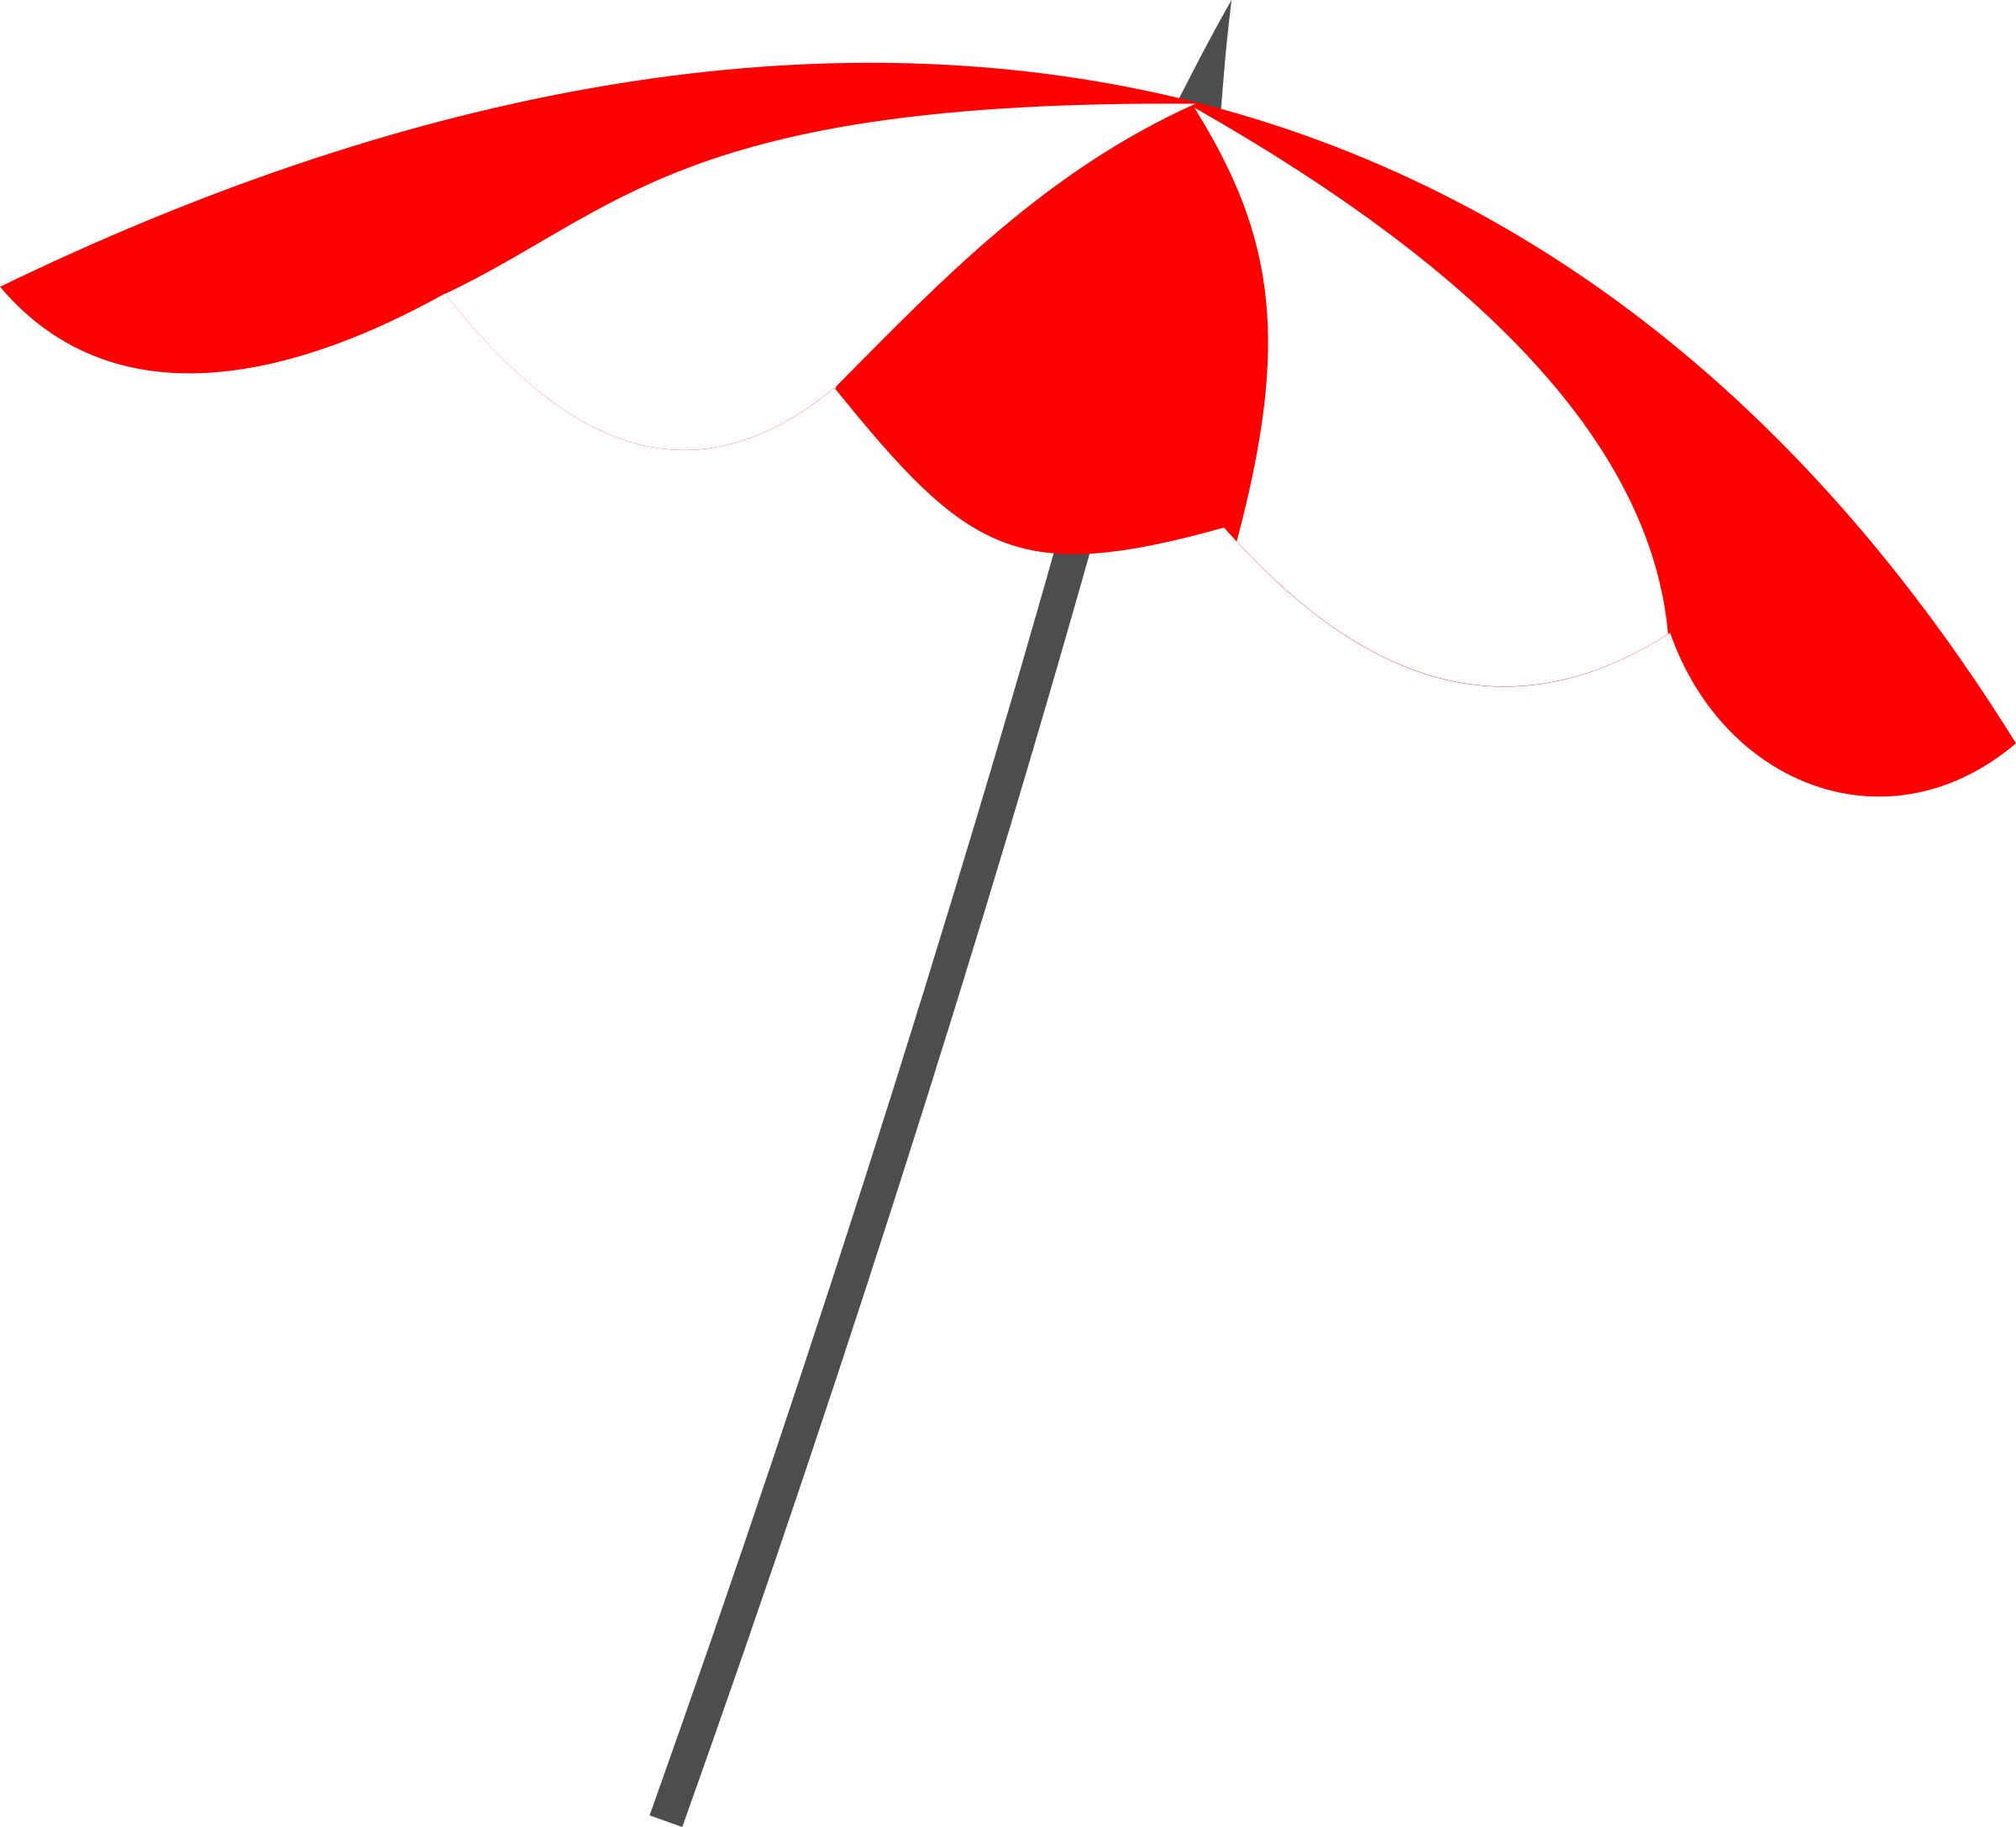 clipart beach umbrella rh openclipart org cartoon beach umbrella clipart beach umbrella clip art free images